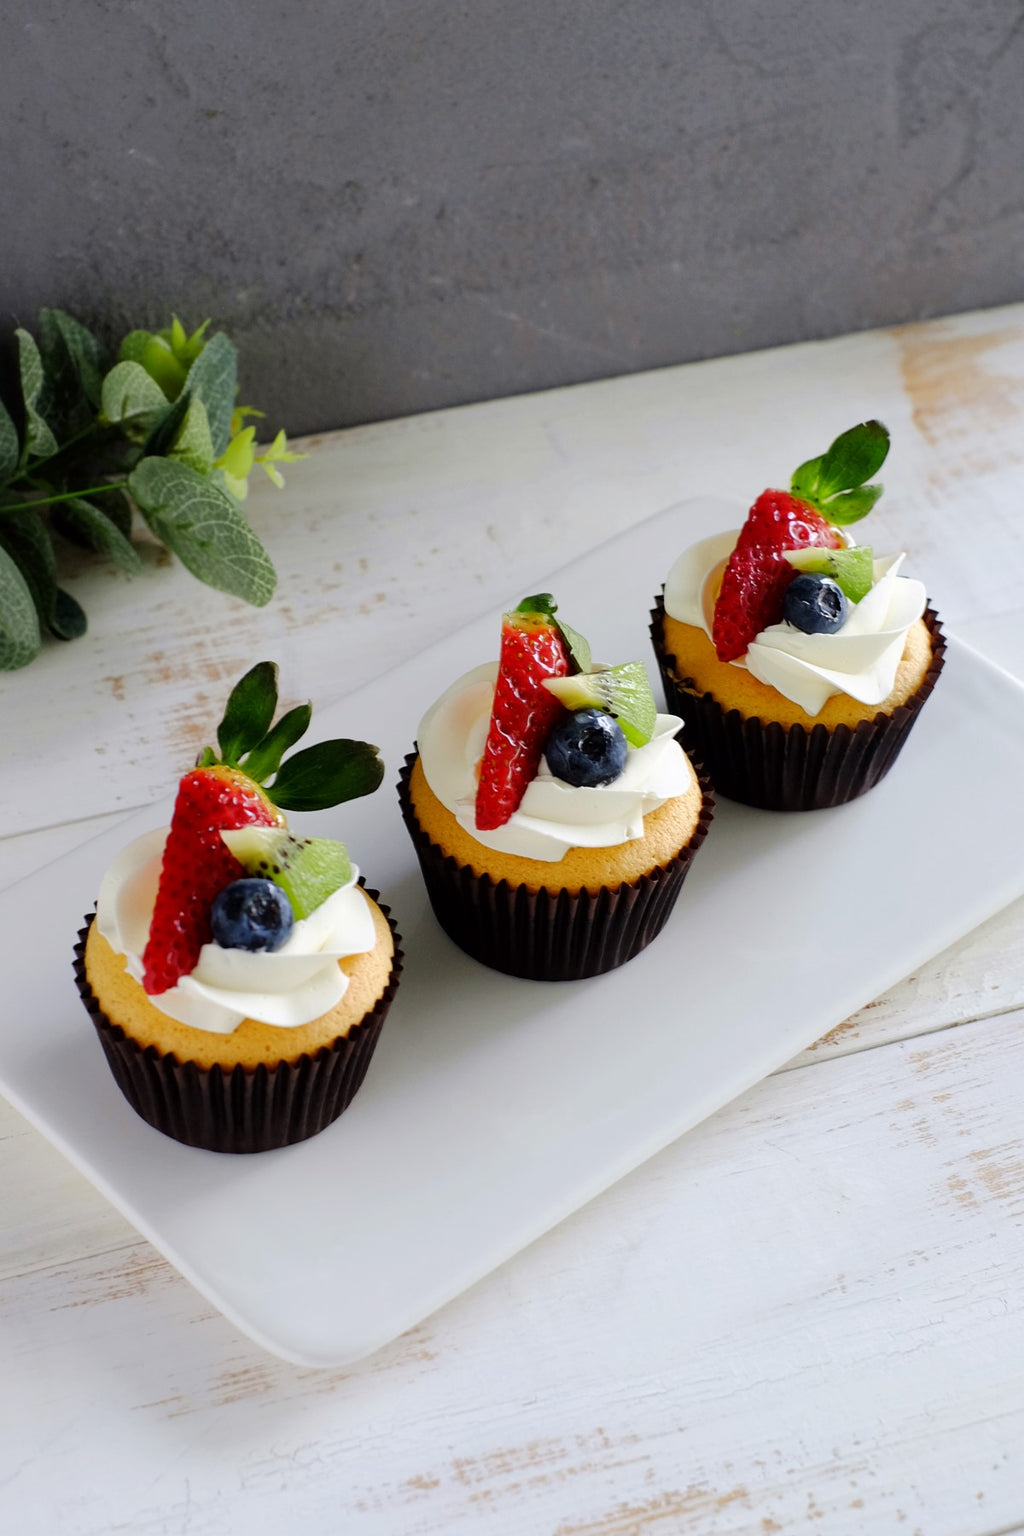 Vanilla Fruit Cupcakes (From $2.95/Pc)